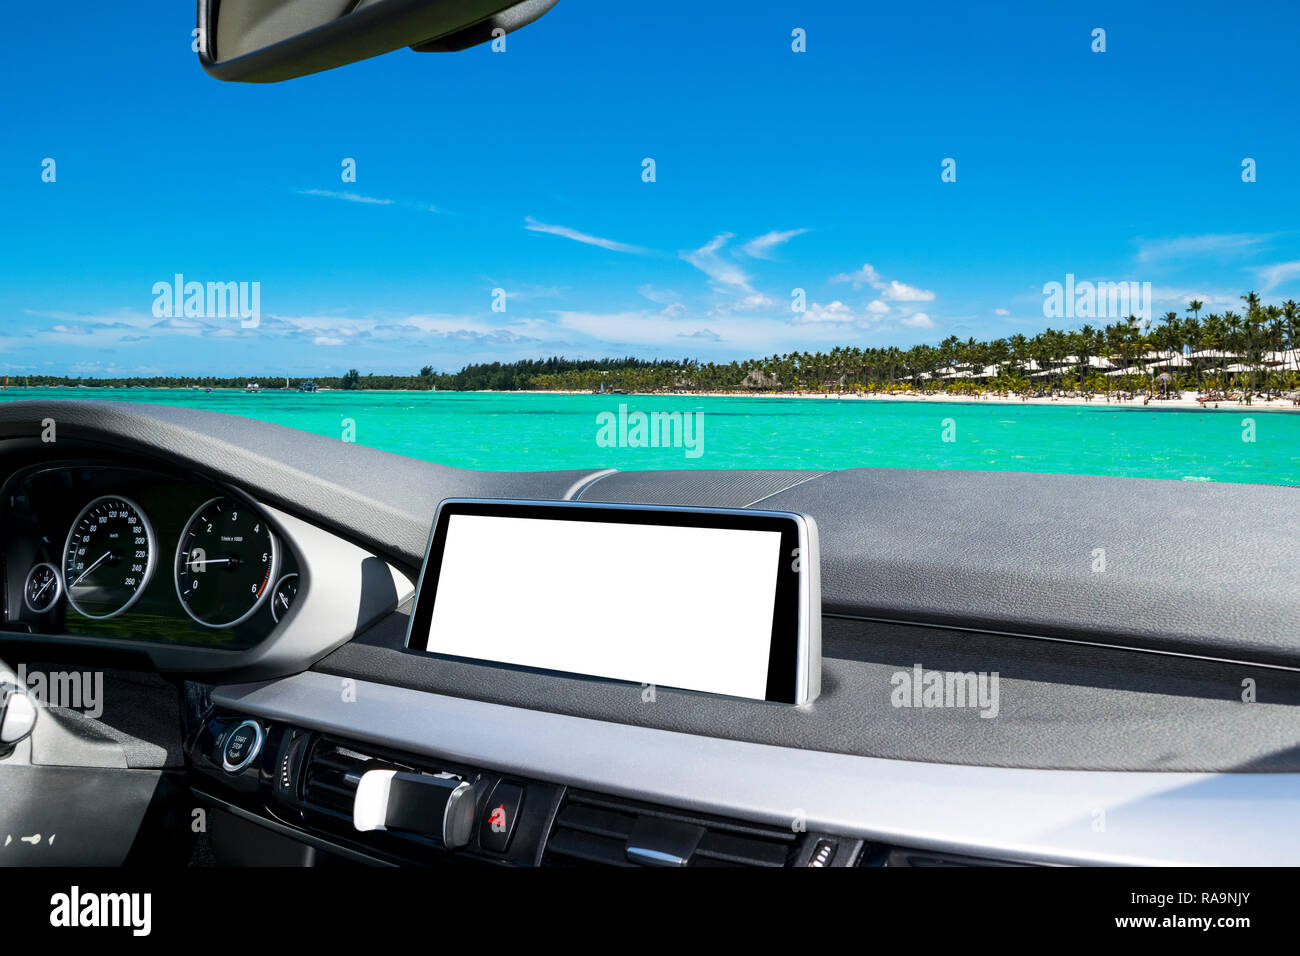 White Screen system display for GPS Navigation and Multimedia as automotive technology in car. white copy space of touch screen. Modern car dashboard  - Stock Image